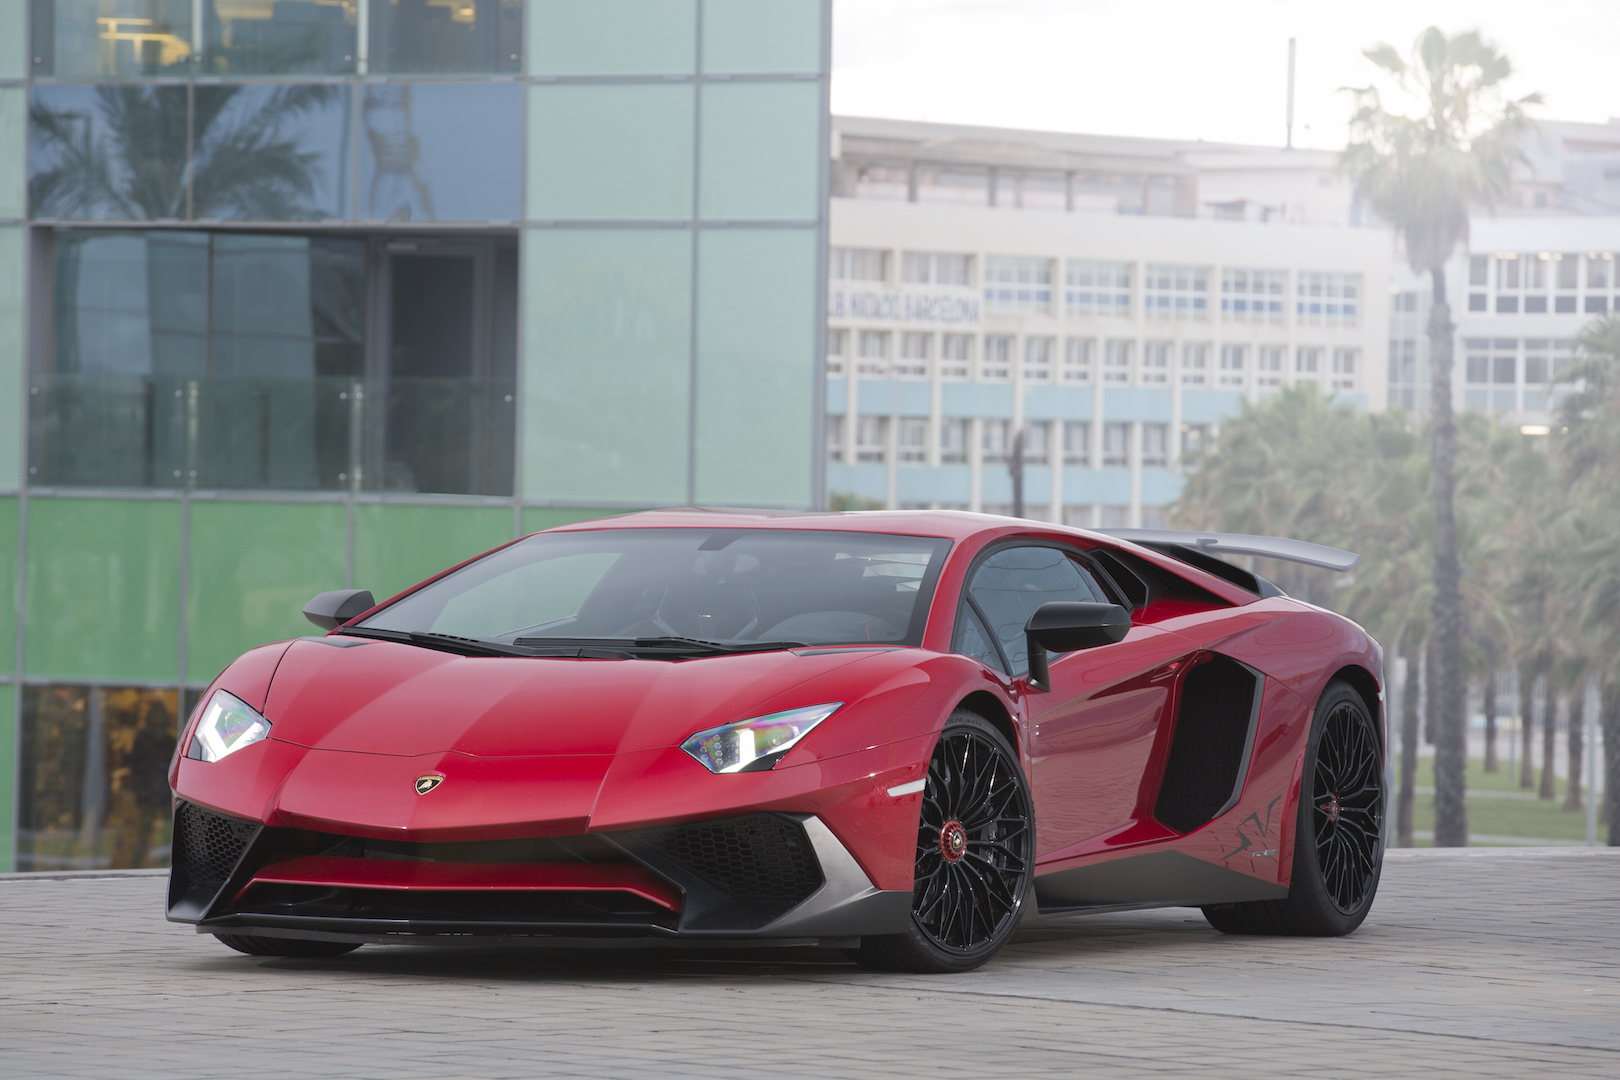 2016 Lamborghini Aventador Review, Ratings, Specs, Prices, And Photos   The  Car Connection